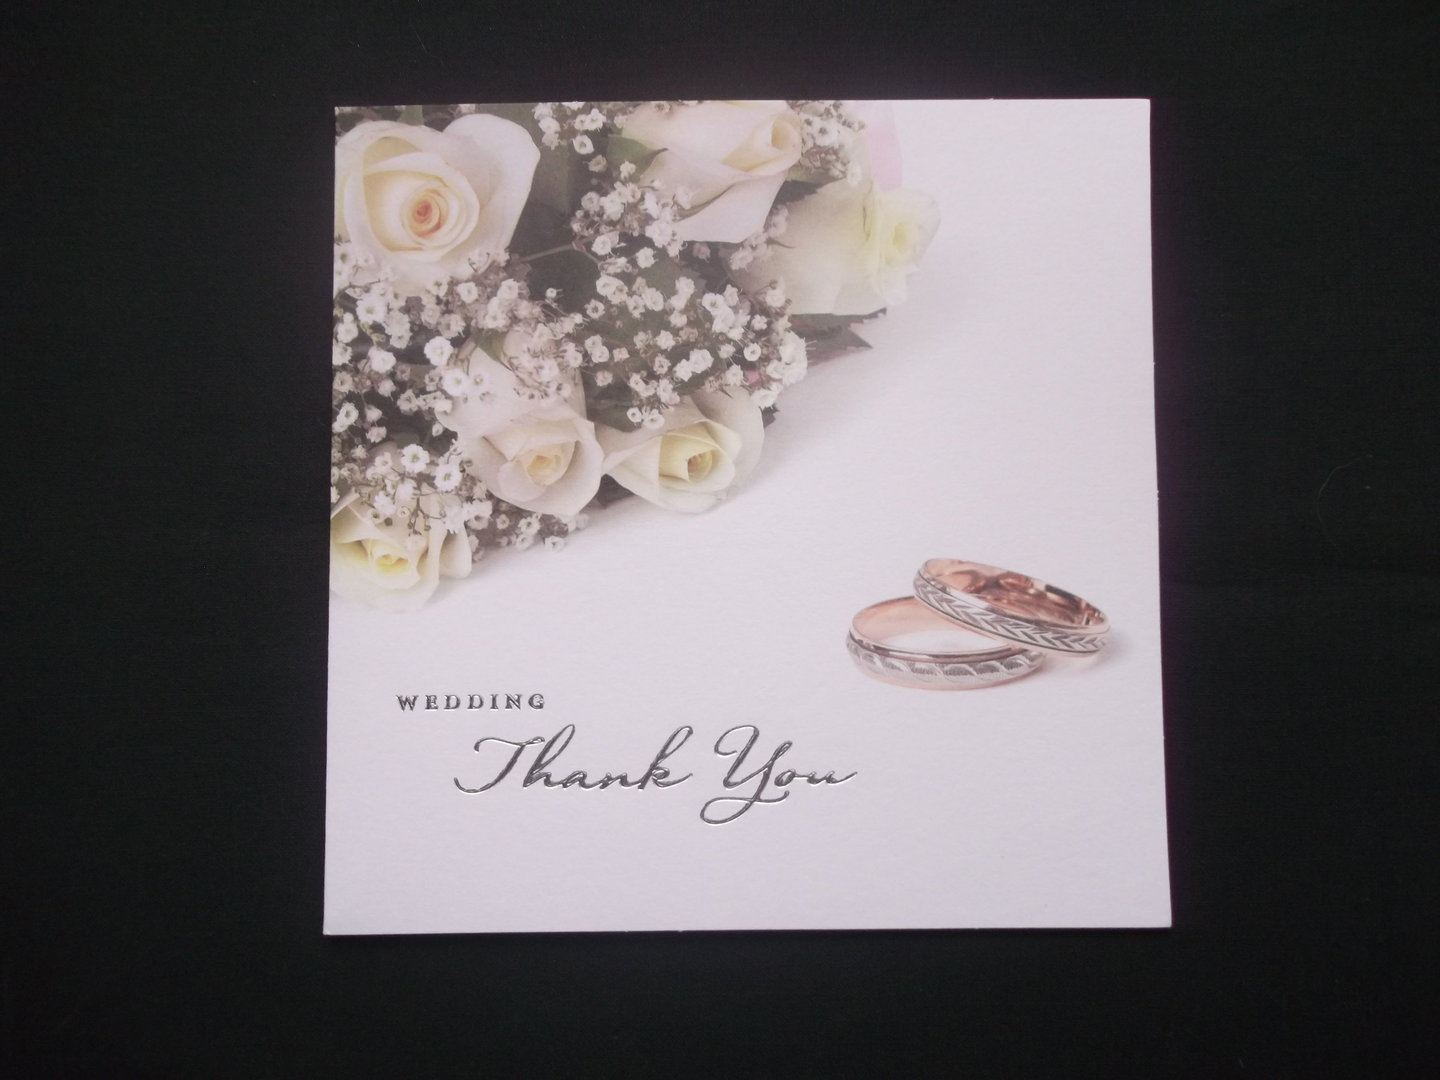 Thank You Card Wedding Gift: Wedding Gift Thank You Cards